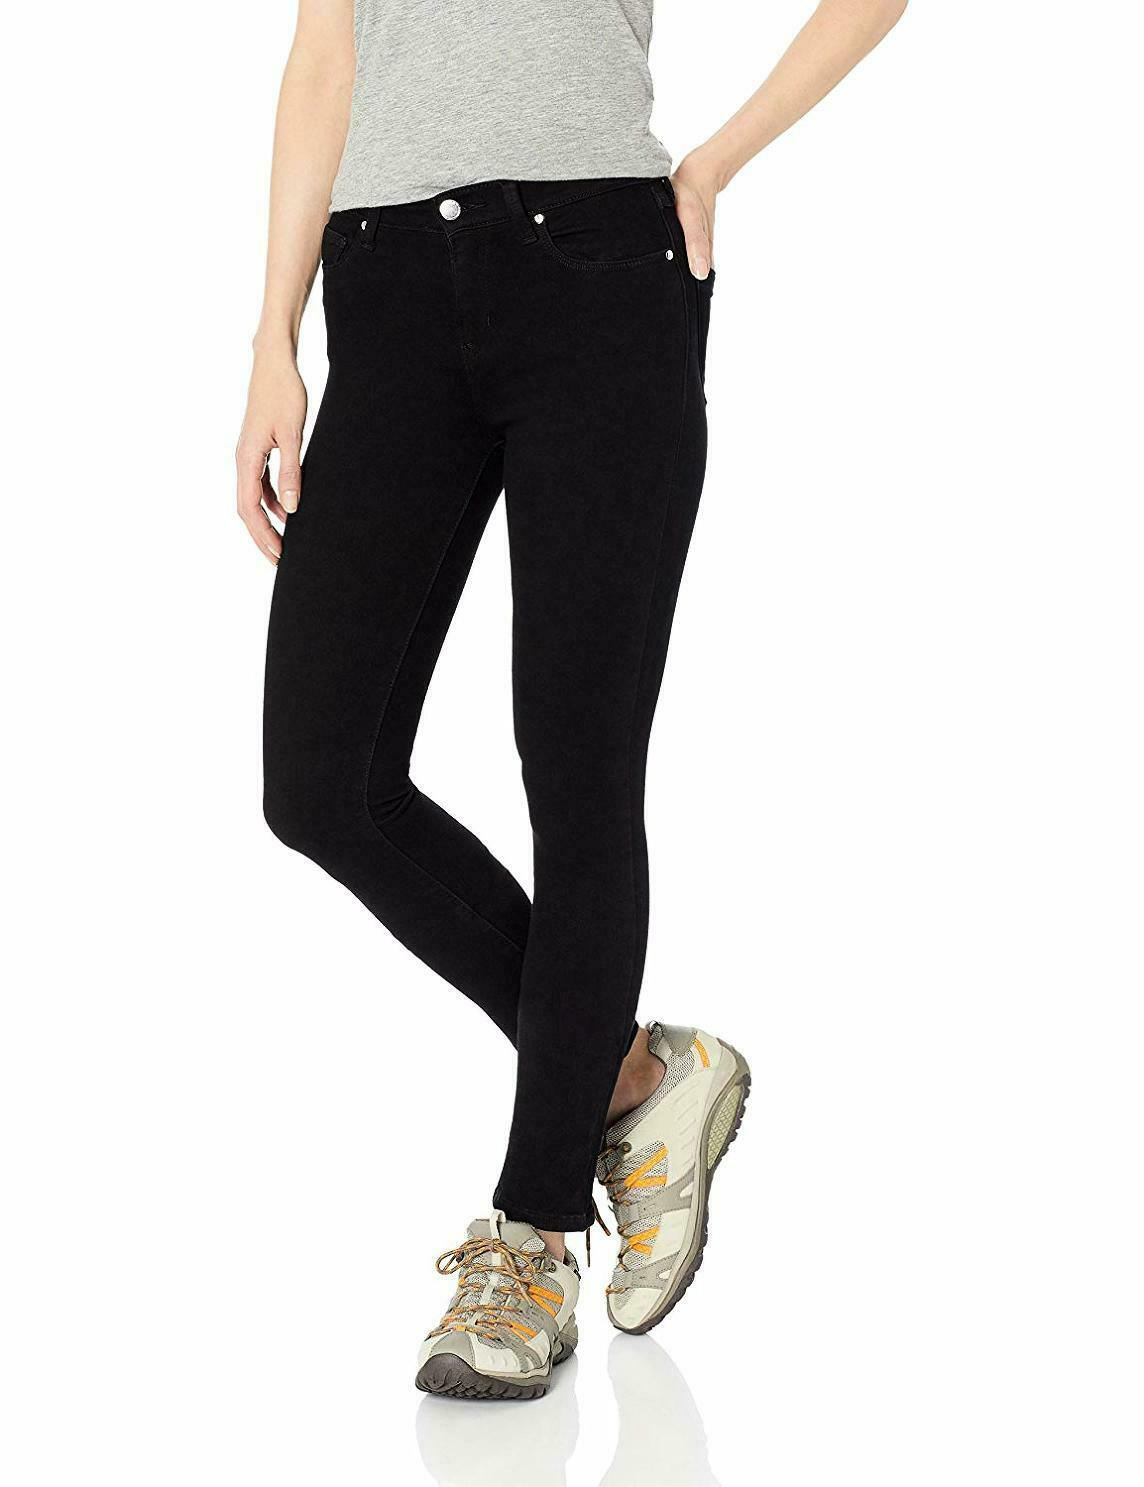 Lole Skinny Long Jeans - Choose SZ color